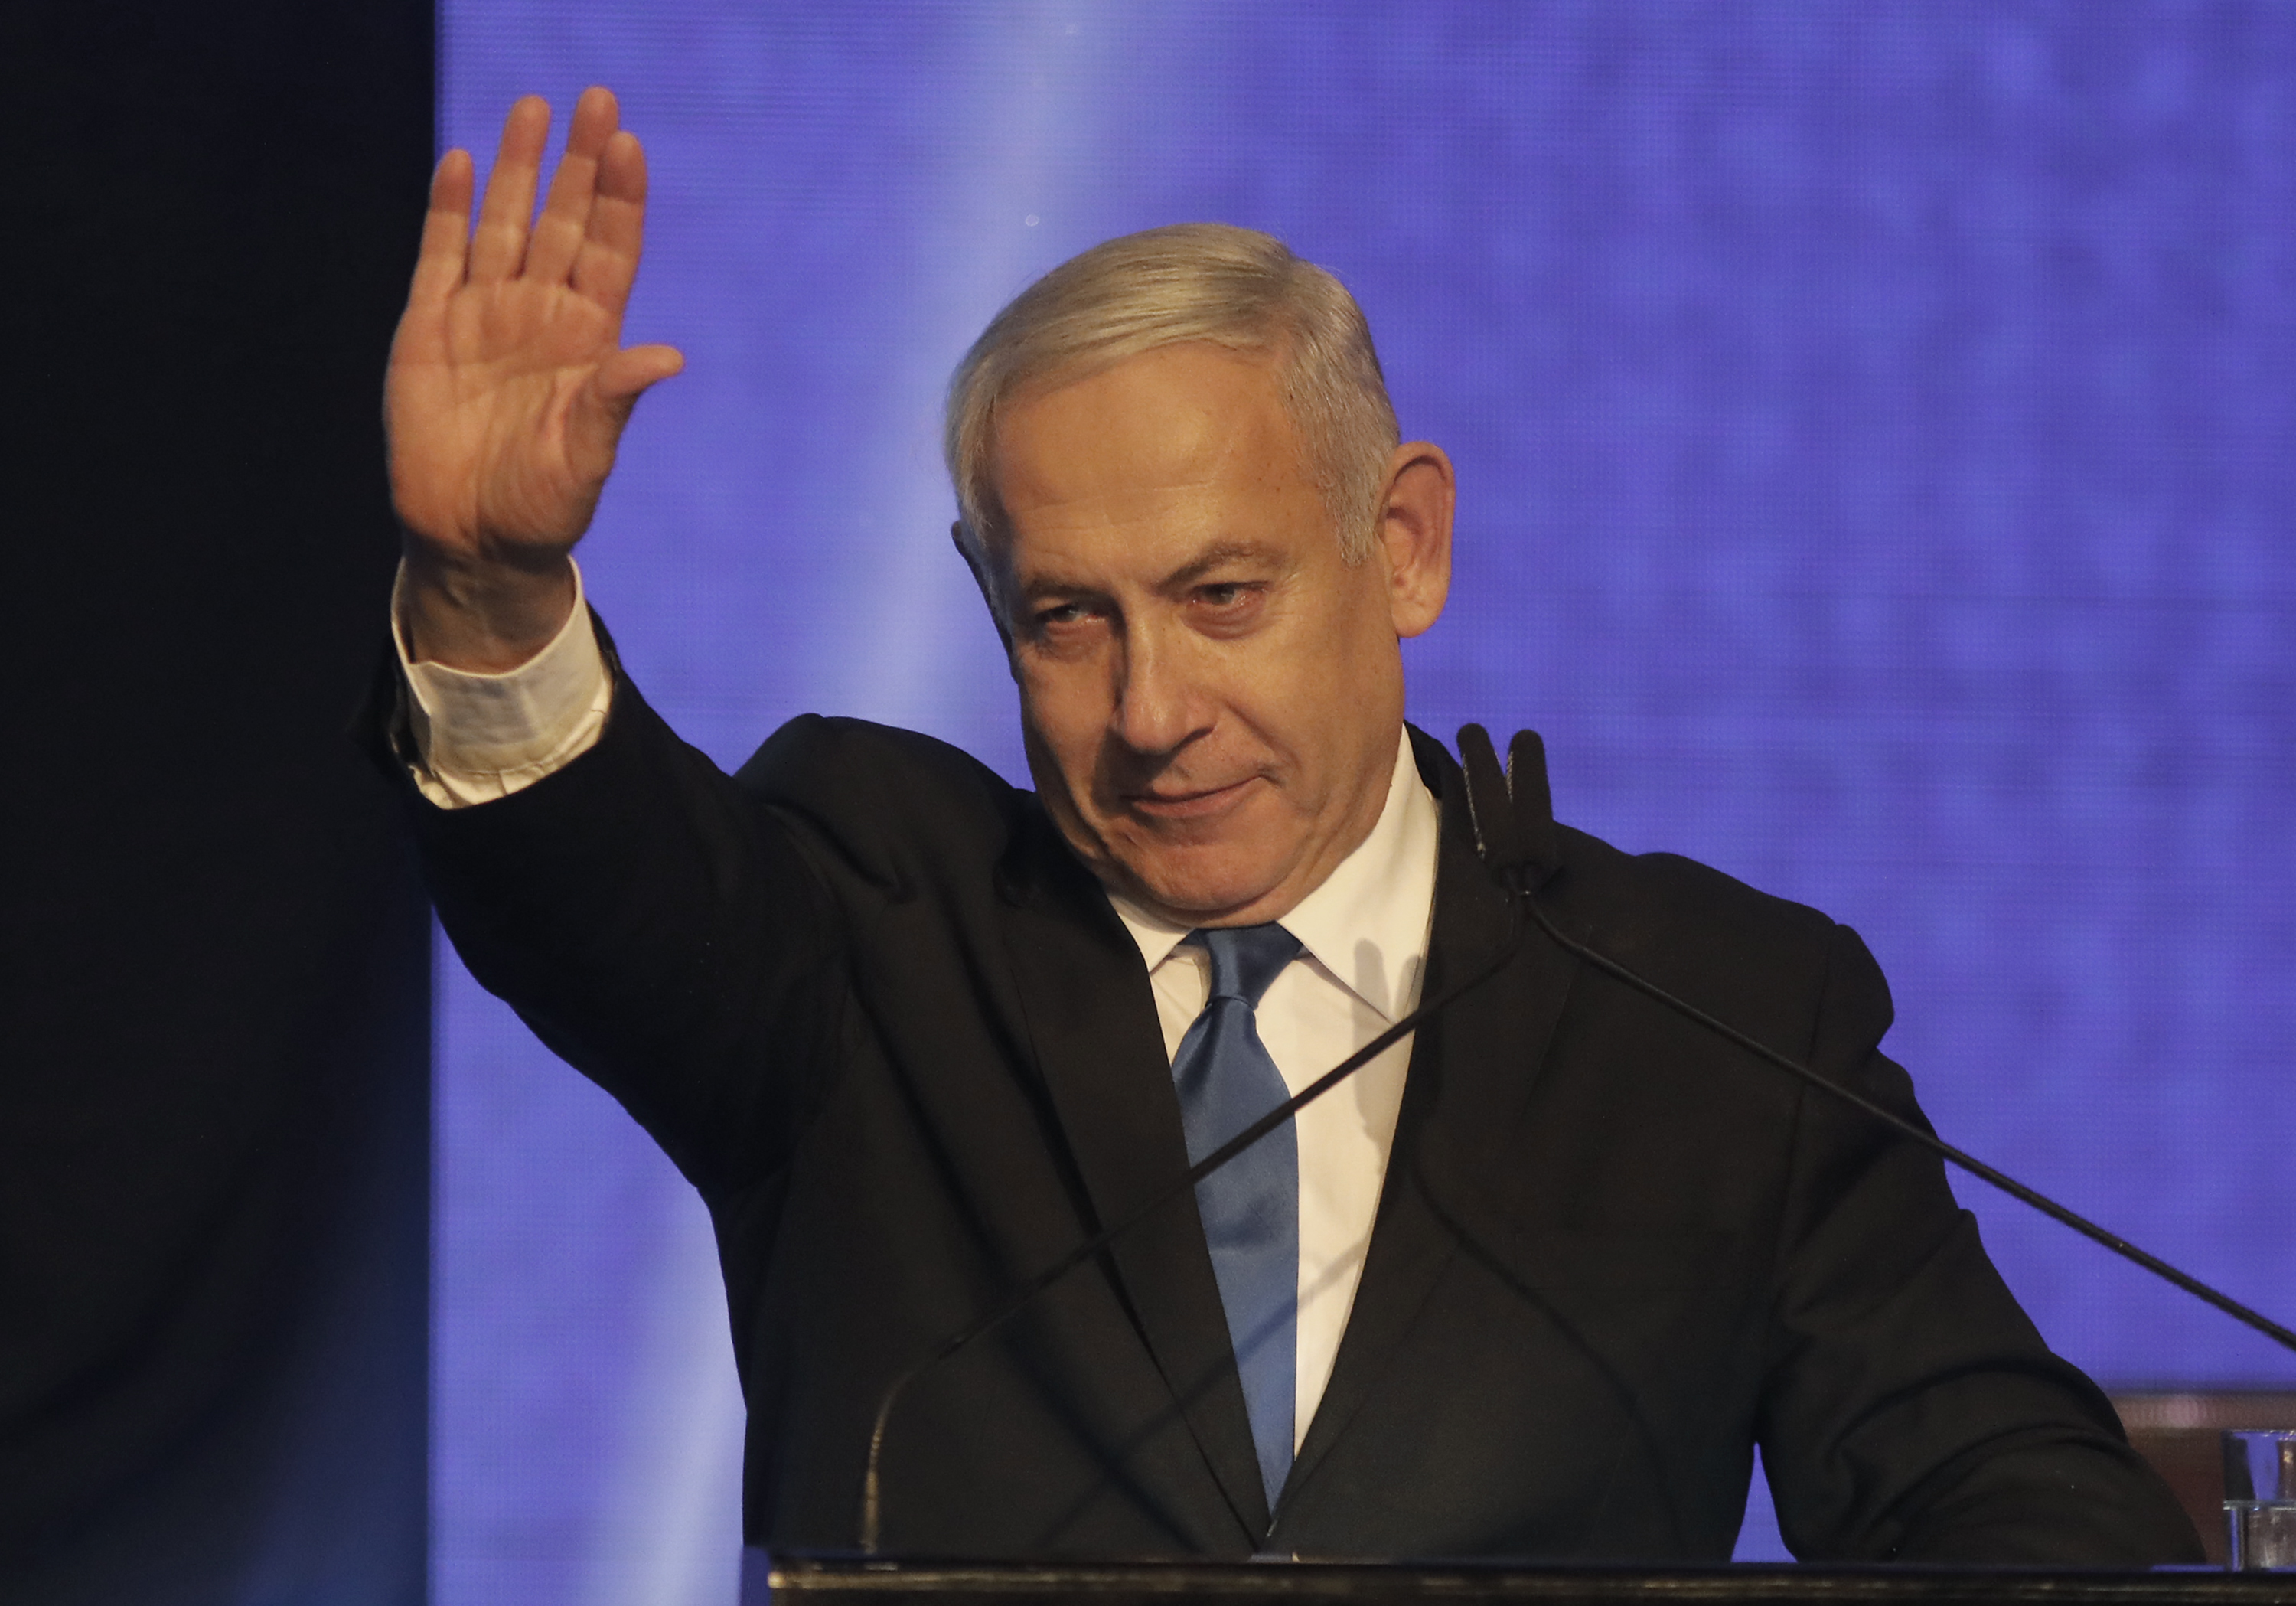 Israeli Prime Minister Benjamin Netanyahu addresses supporters at his Likud party's electoral campaign headquarters early on September 18, 2019.